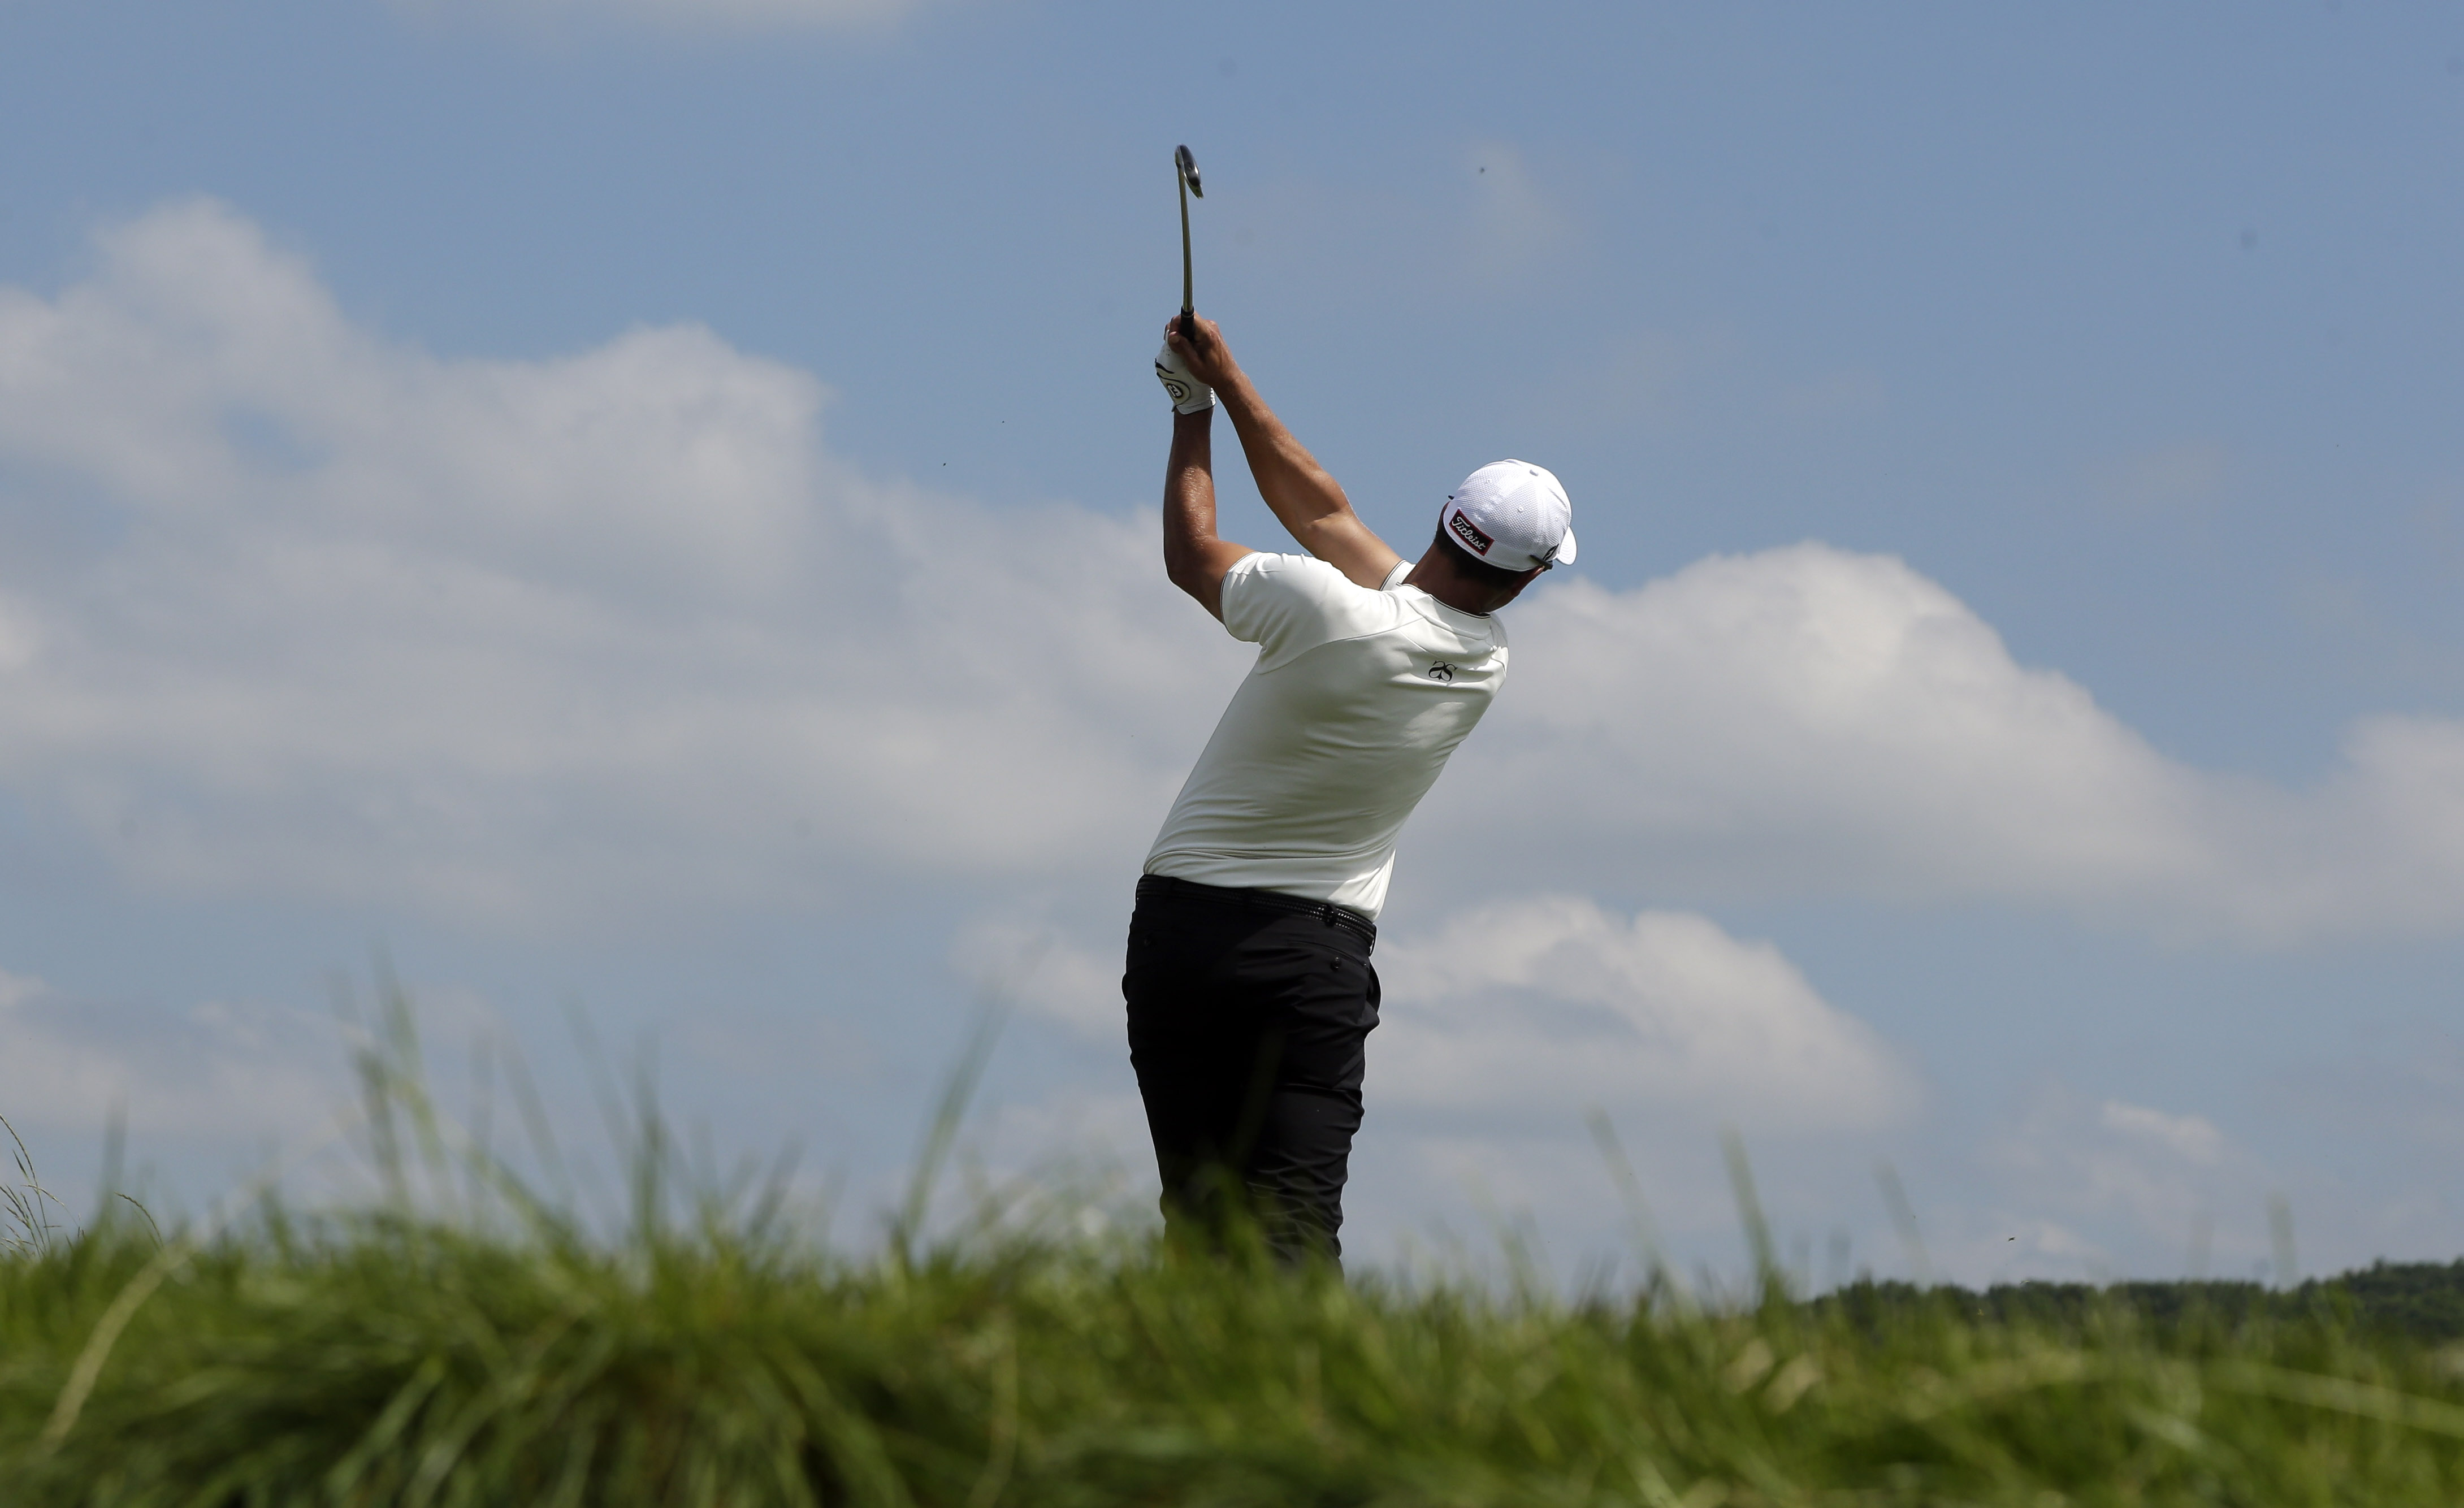 Adam Scott, of Australia, hits his tee shot on the fiith hole during the rain delayed first round of the U.S. Open golf championship at Oakmont Country Club on Friday, June 17, 2016, in Oakmont, Pa. (AP Photo/Charlie Riedel)